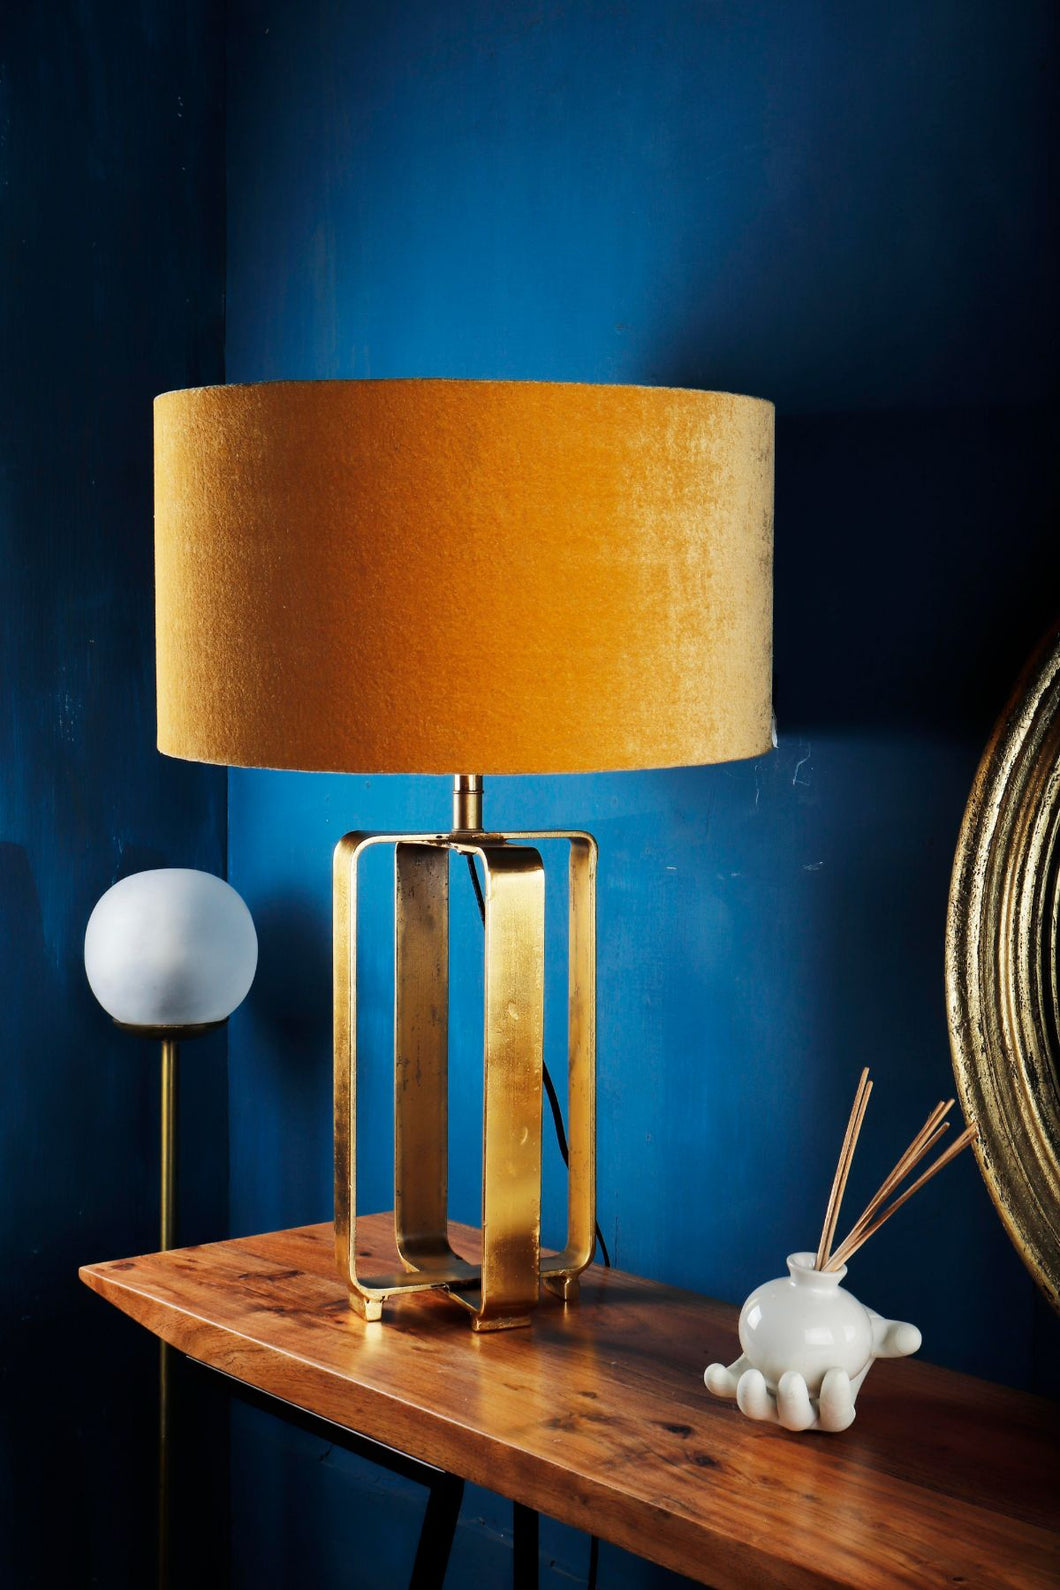 Golden Cross Table Lamp with 2 [YELLOW, OLIVE GREEN] Lampshade